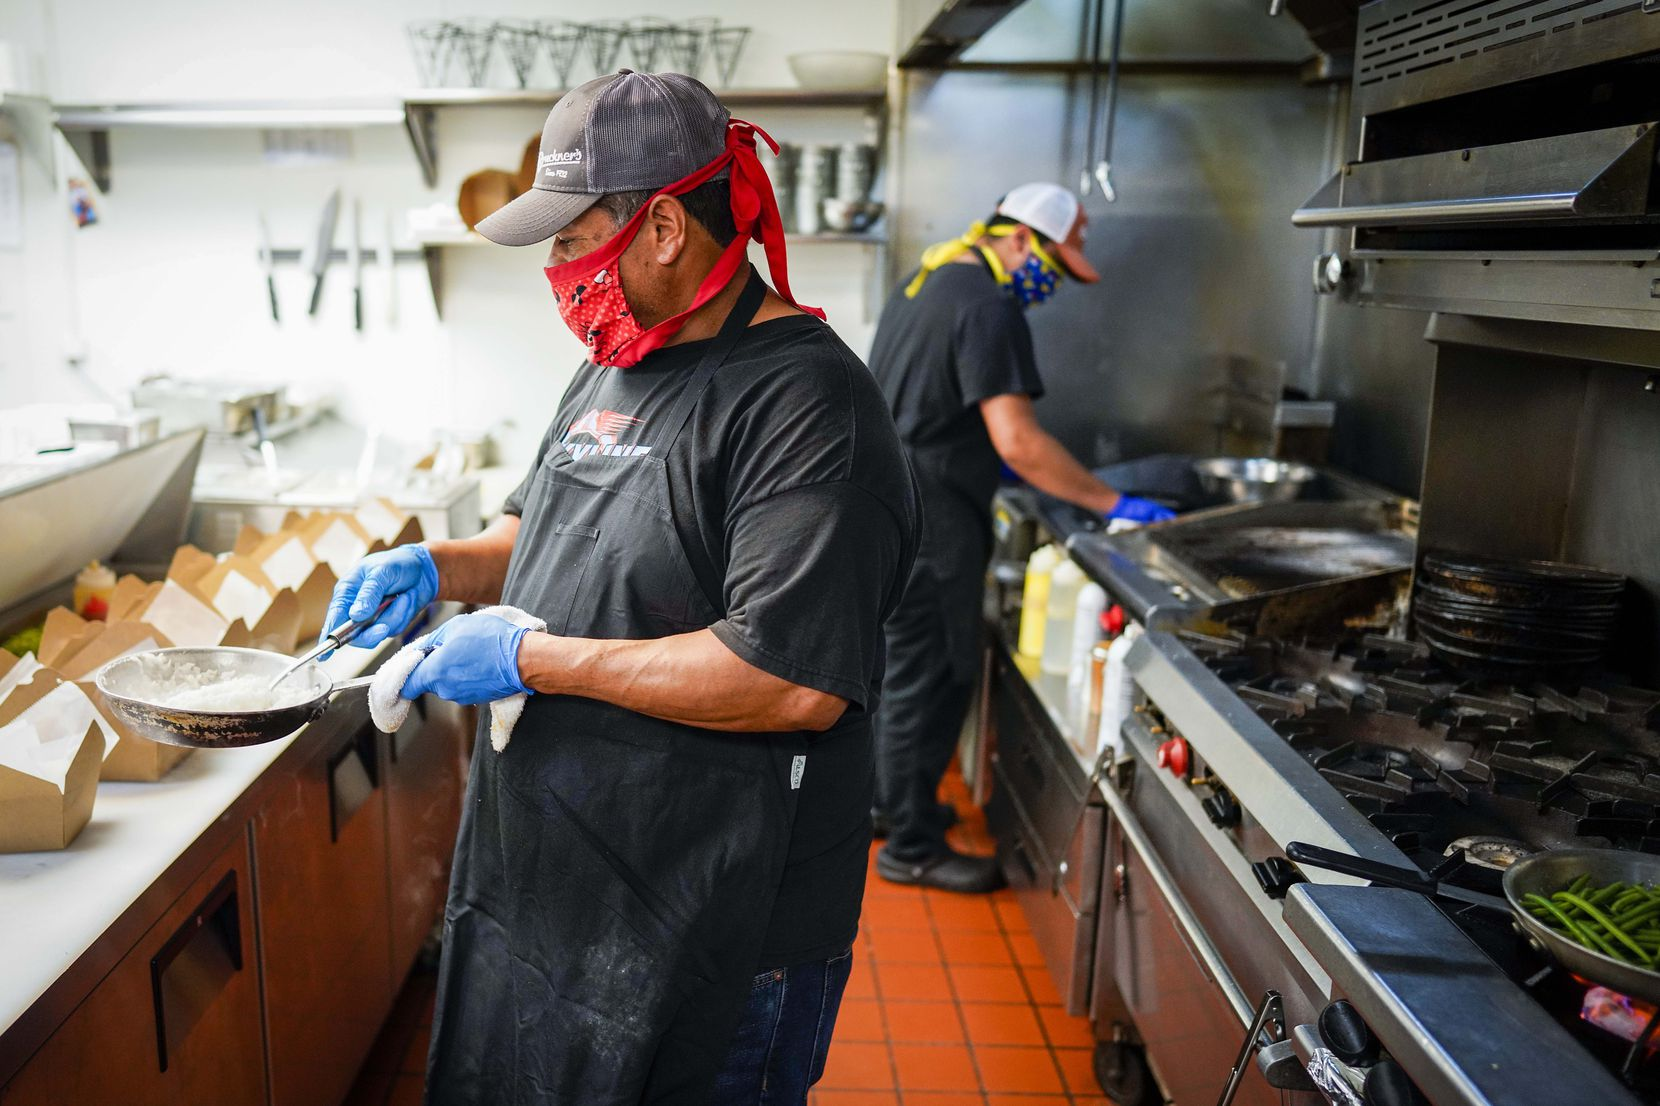 Cruz Garcia (front) and Eduardo Garcia wear face masks as they work in the kitchen at TJ's Seafood restaurant on Tuesday in Dallas. The restaurant has partnered with a testing company to test all of their employees for COVID-19, screen and train them. (Smiley N. Pool/The Dallas Morning News)